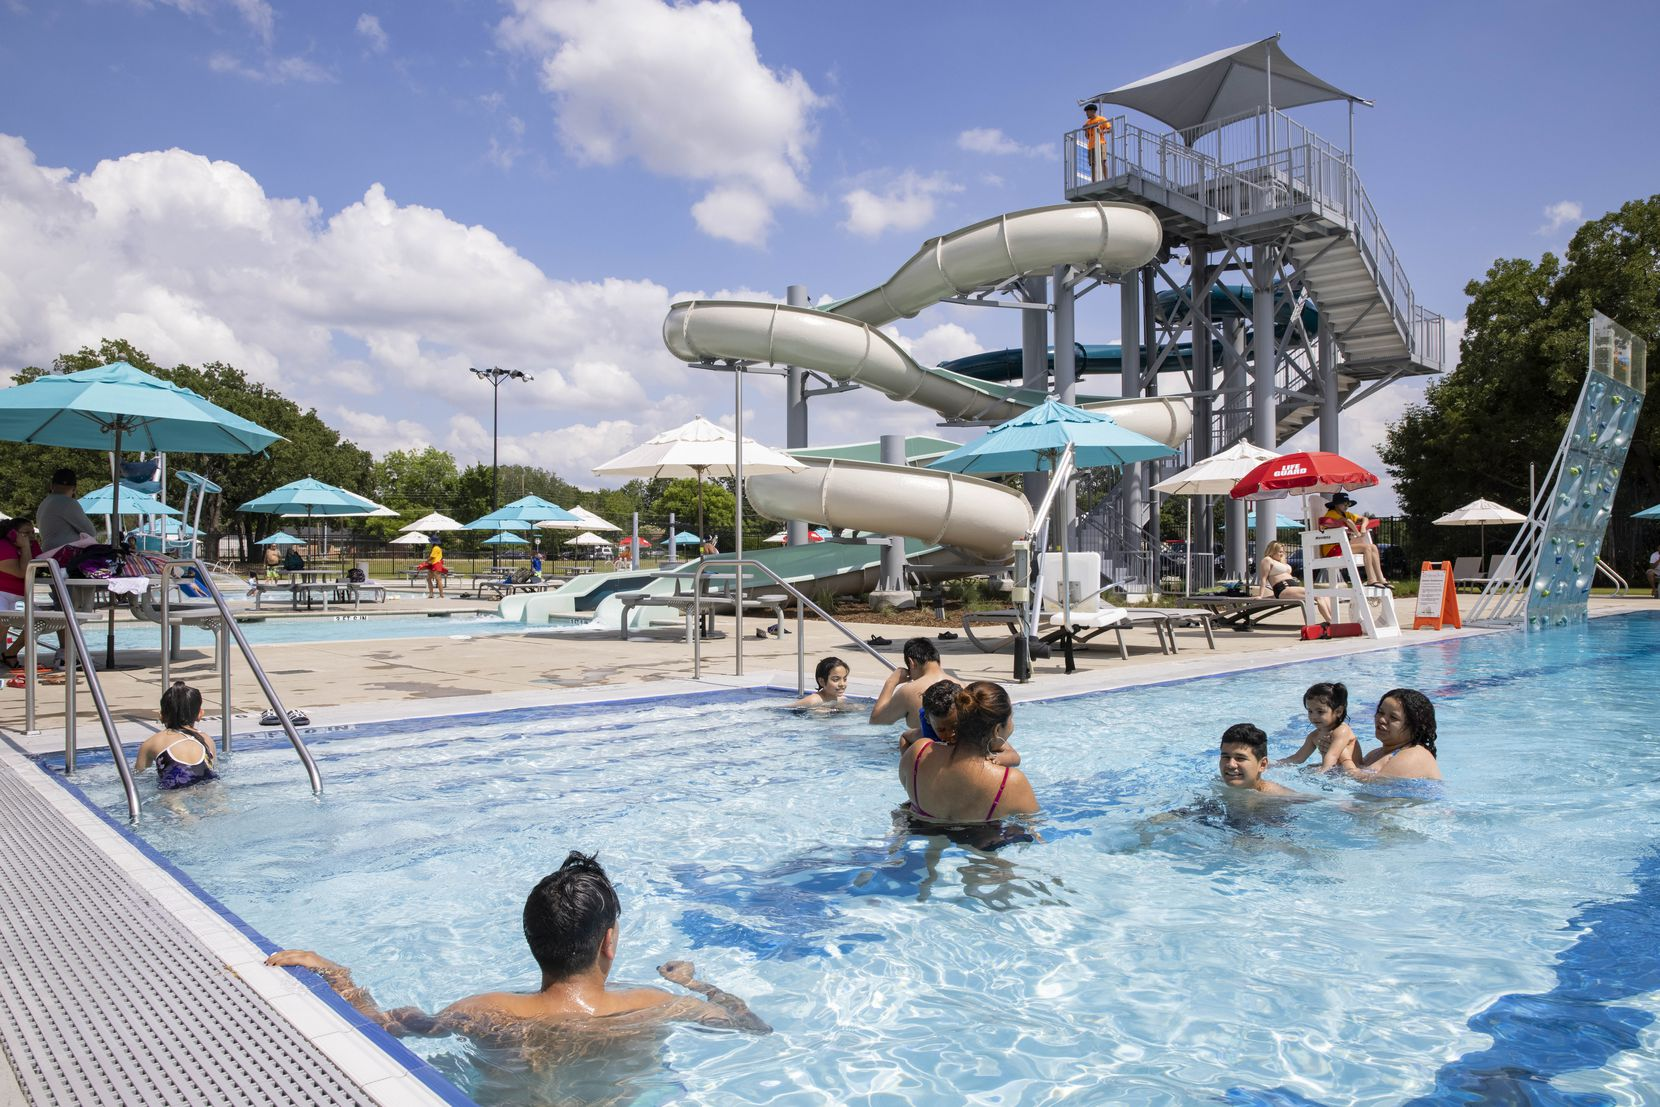 Families enjoy a sunny afternoon at the Cove Aquatic Center at Crawford.